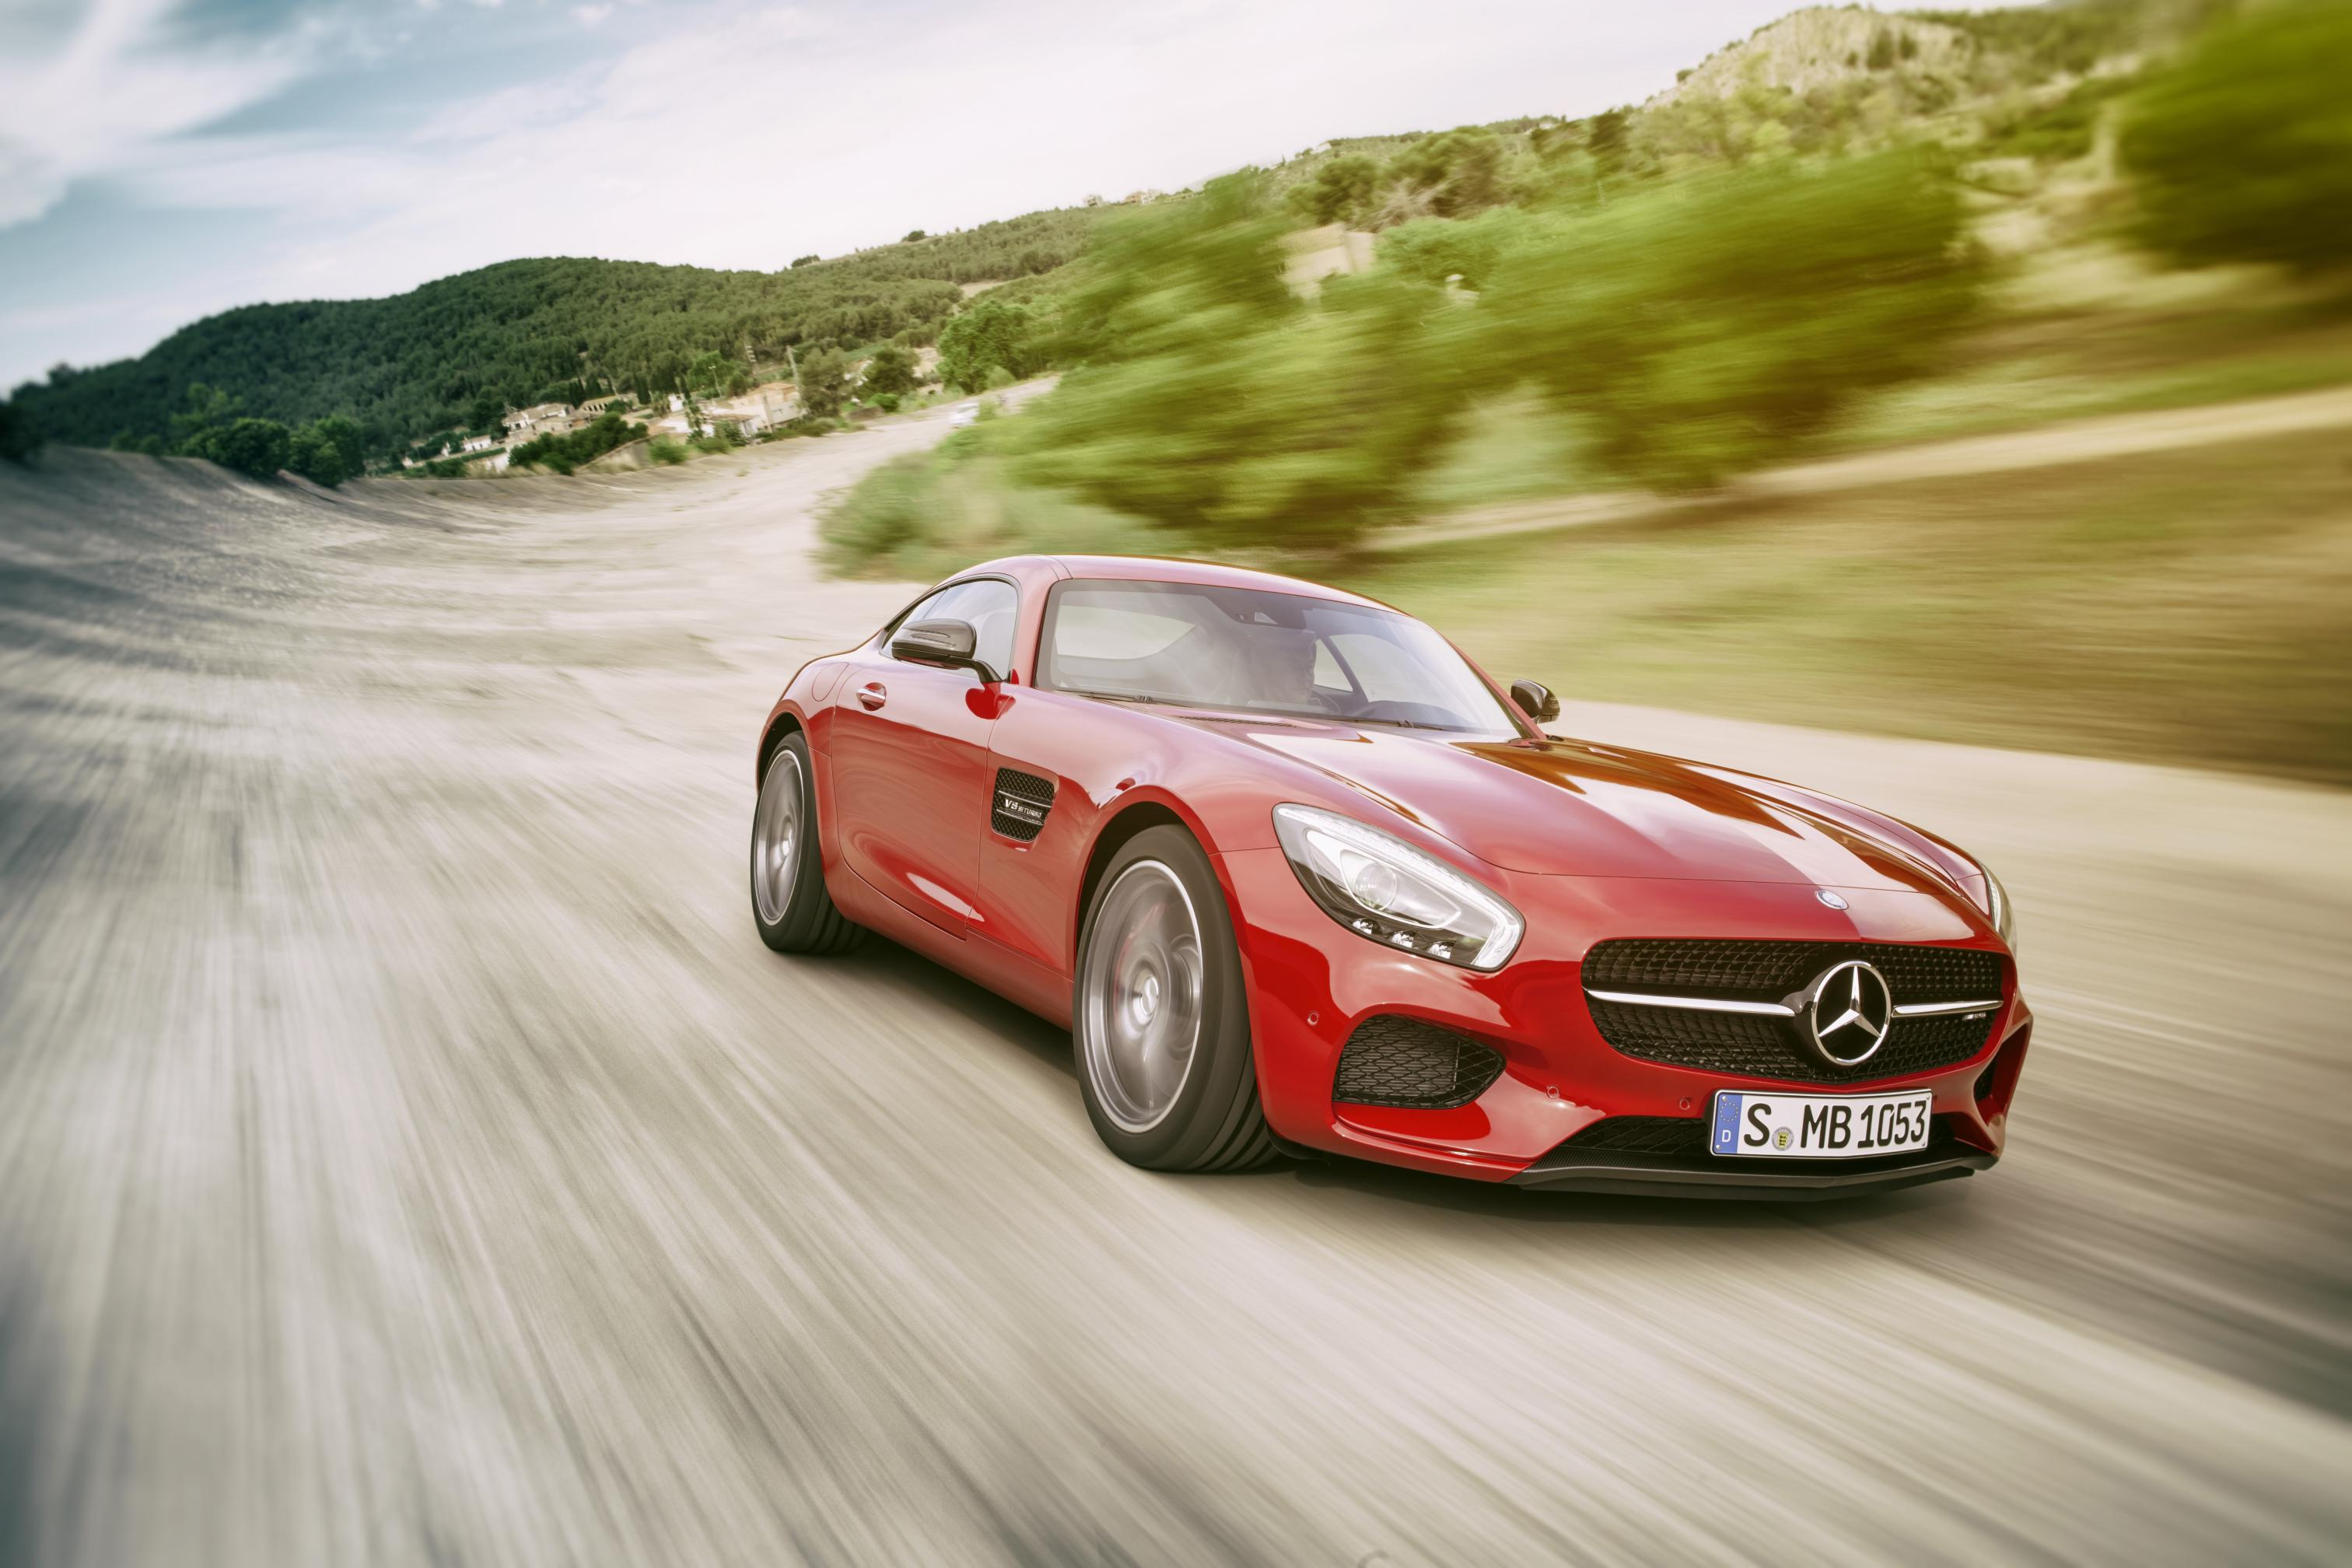 THE NEW MERCEDESAMG GT DRIVING PERFORMANCE FOR SPORTS CAR - Sport car driving